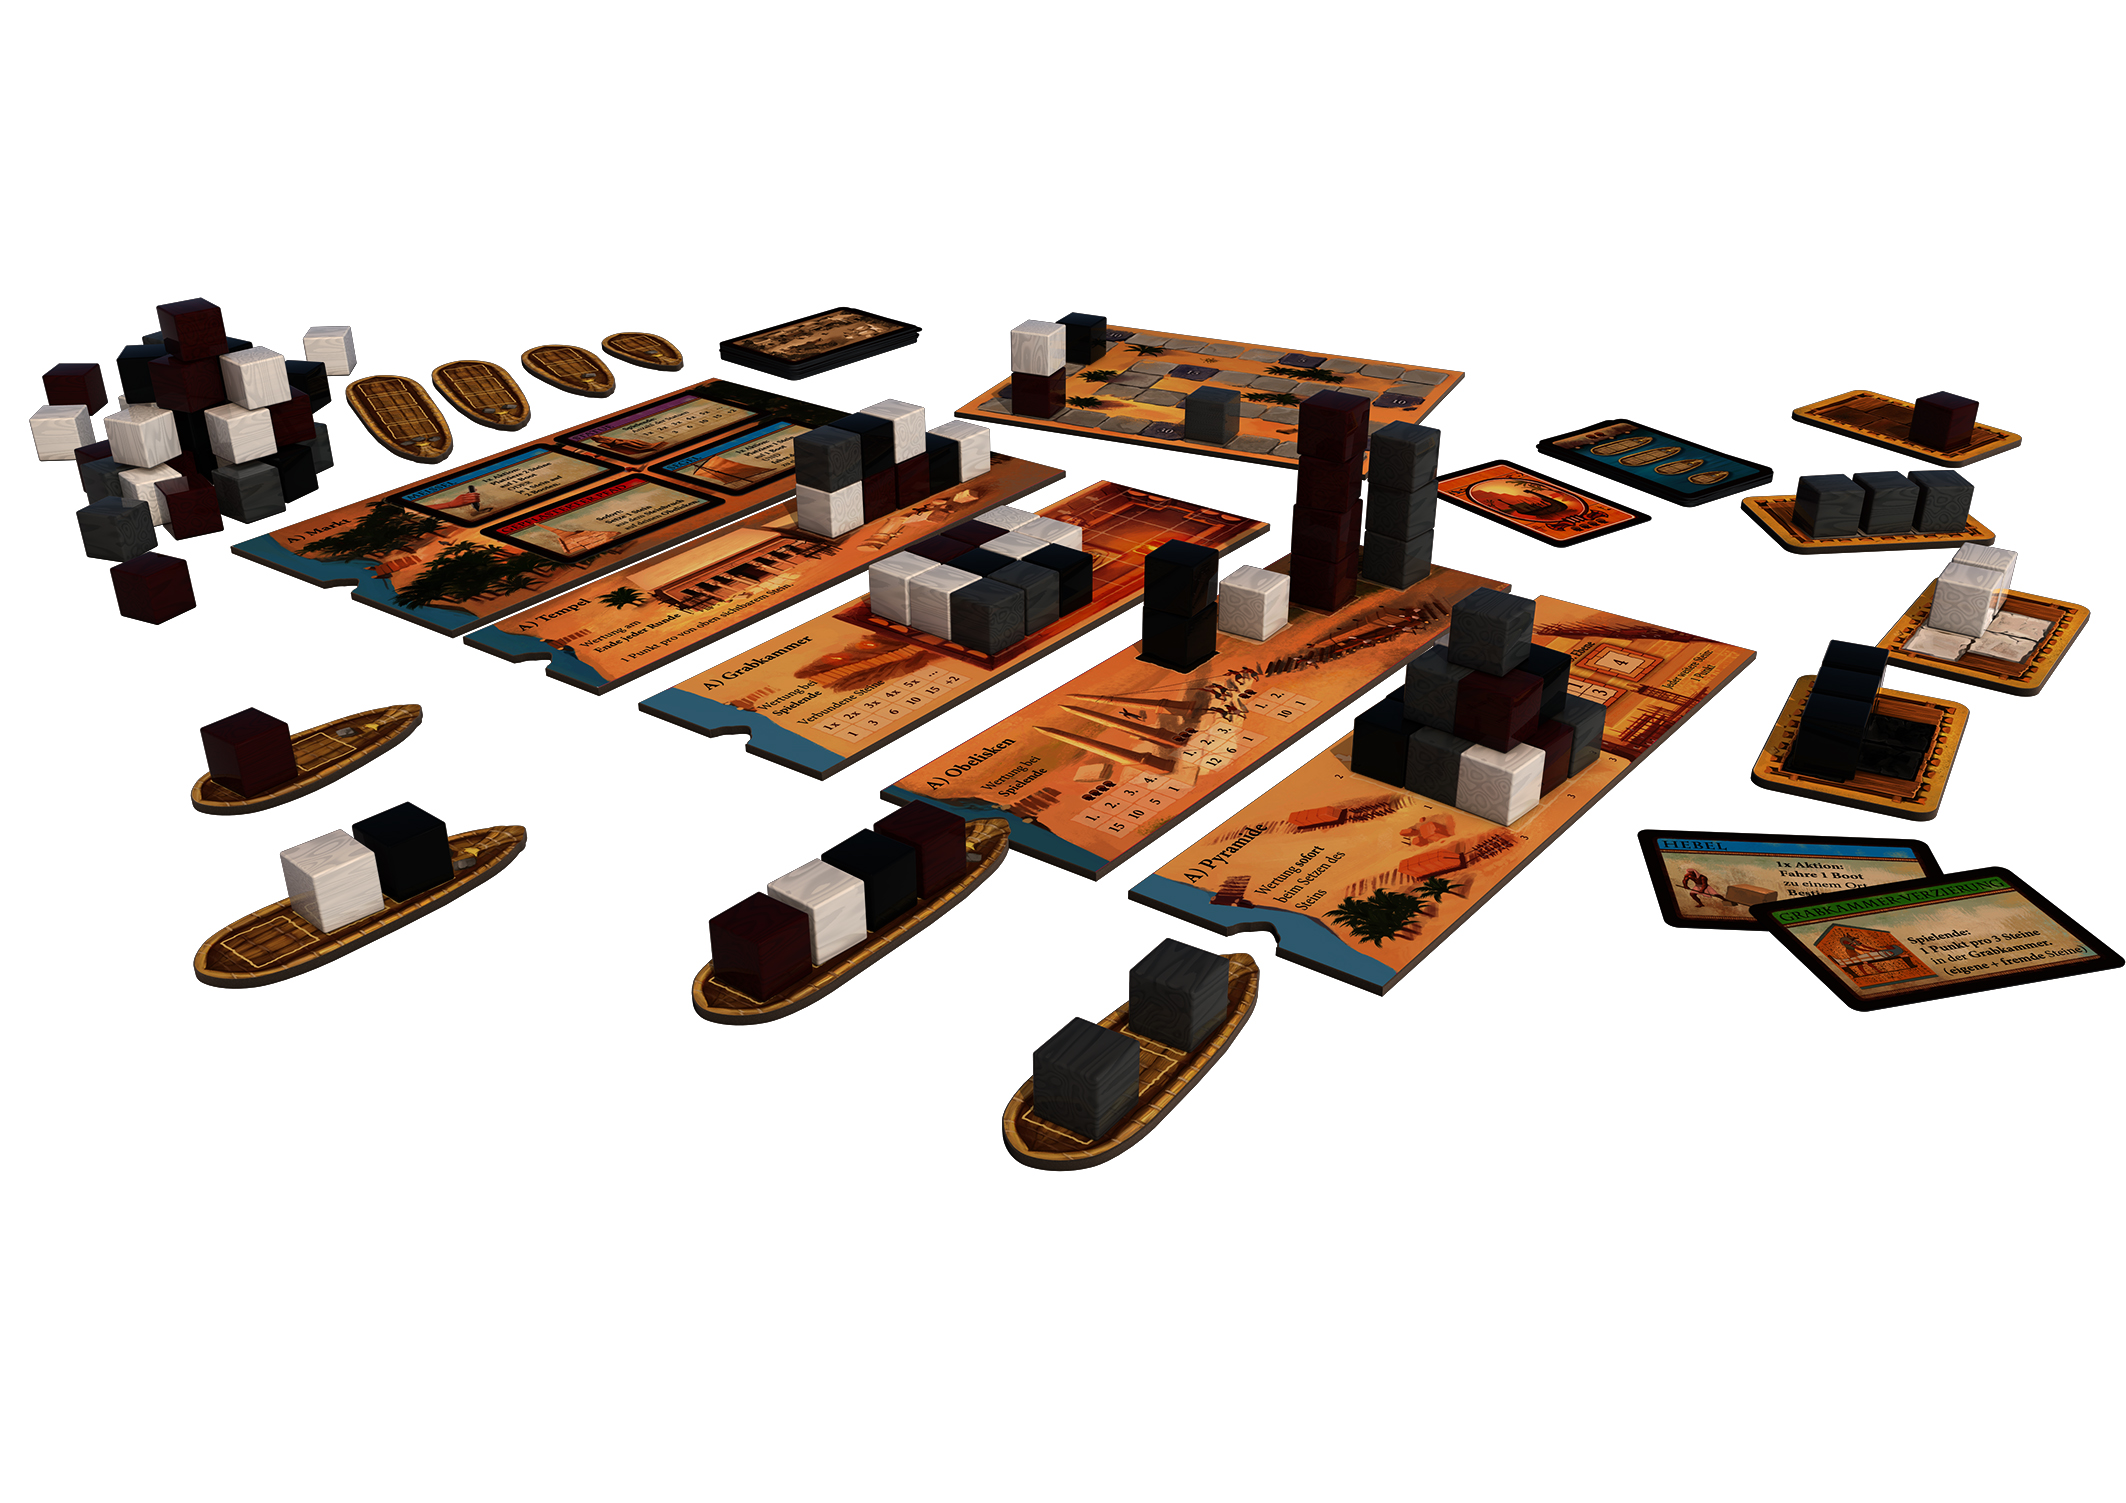 Image result for imhotep images board game